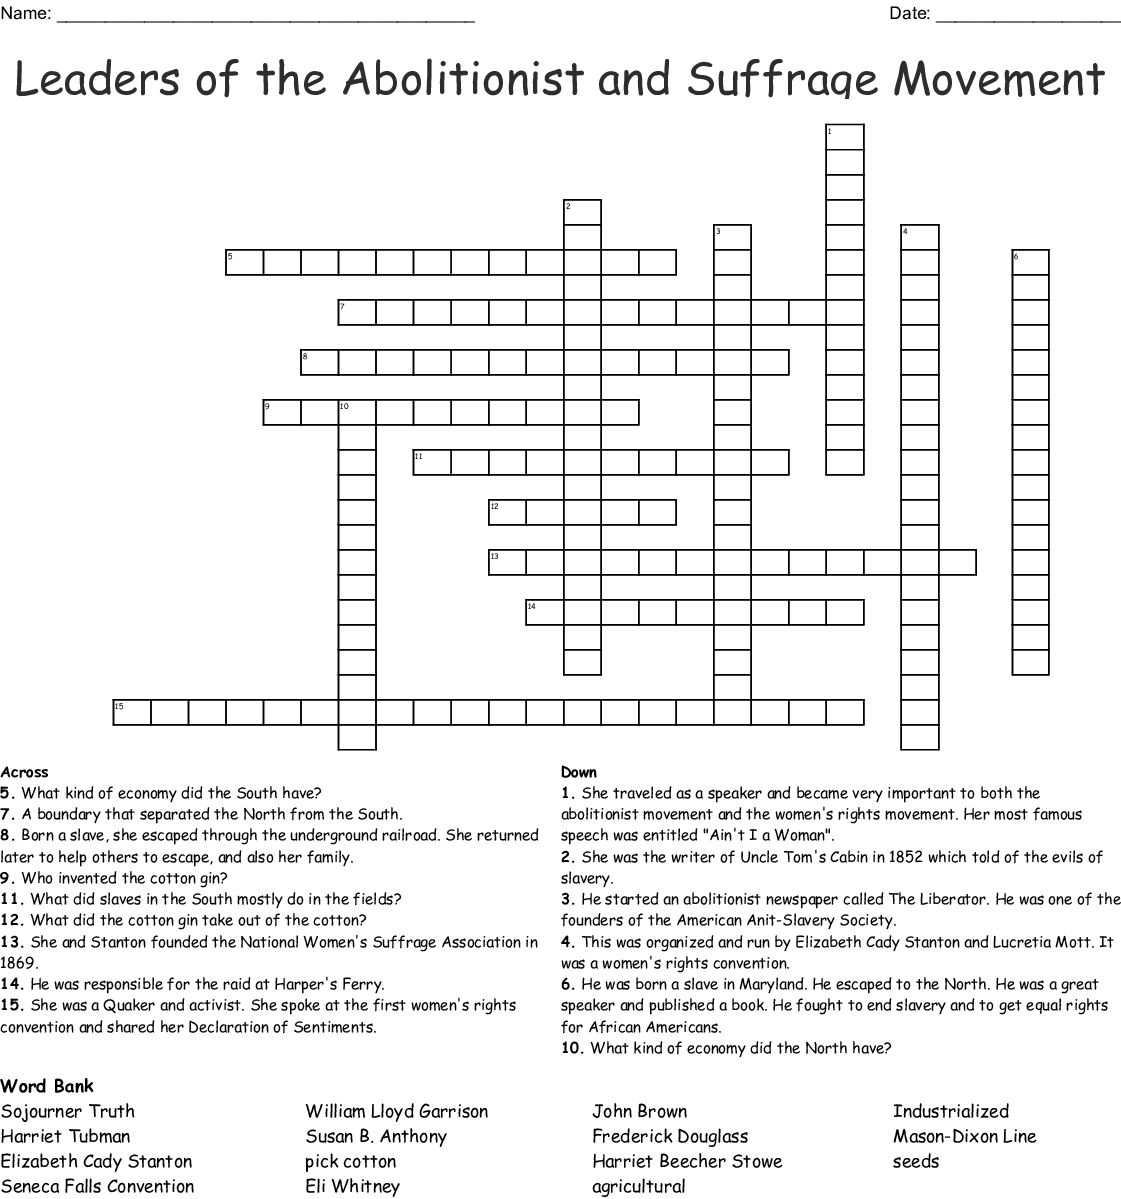 Leaders Of The Abolitionist And Suffrage Movement Crossword